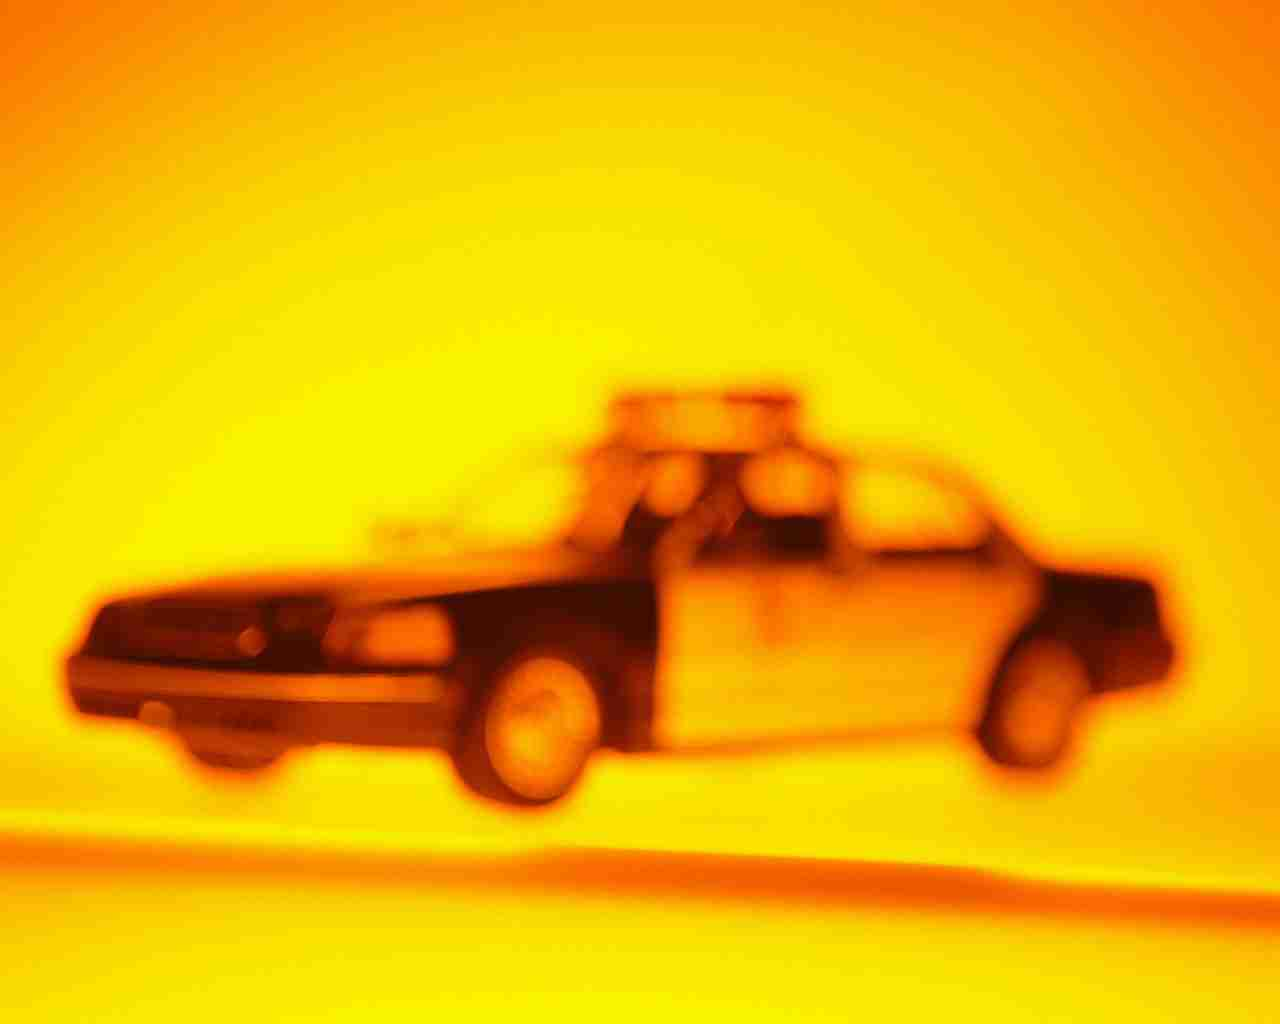 Toy Police Car in Yellow Light